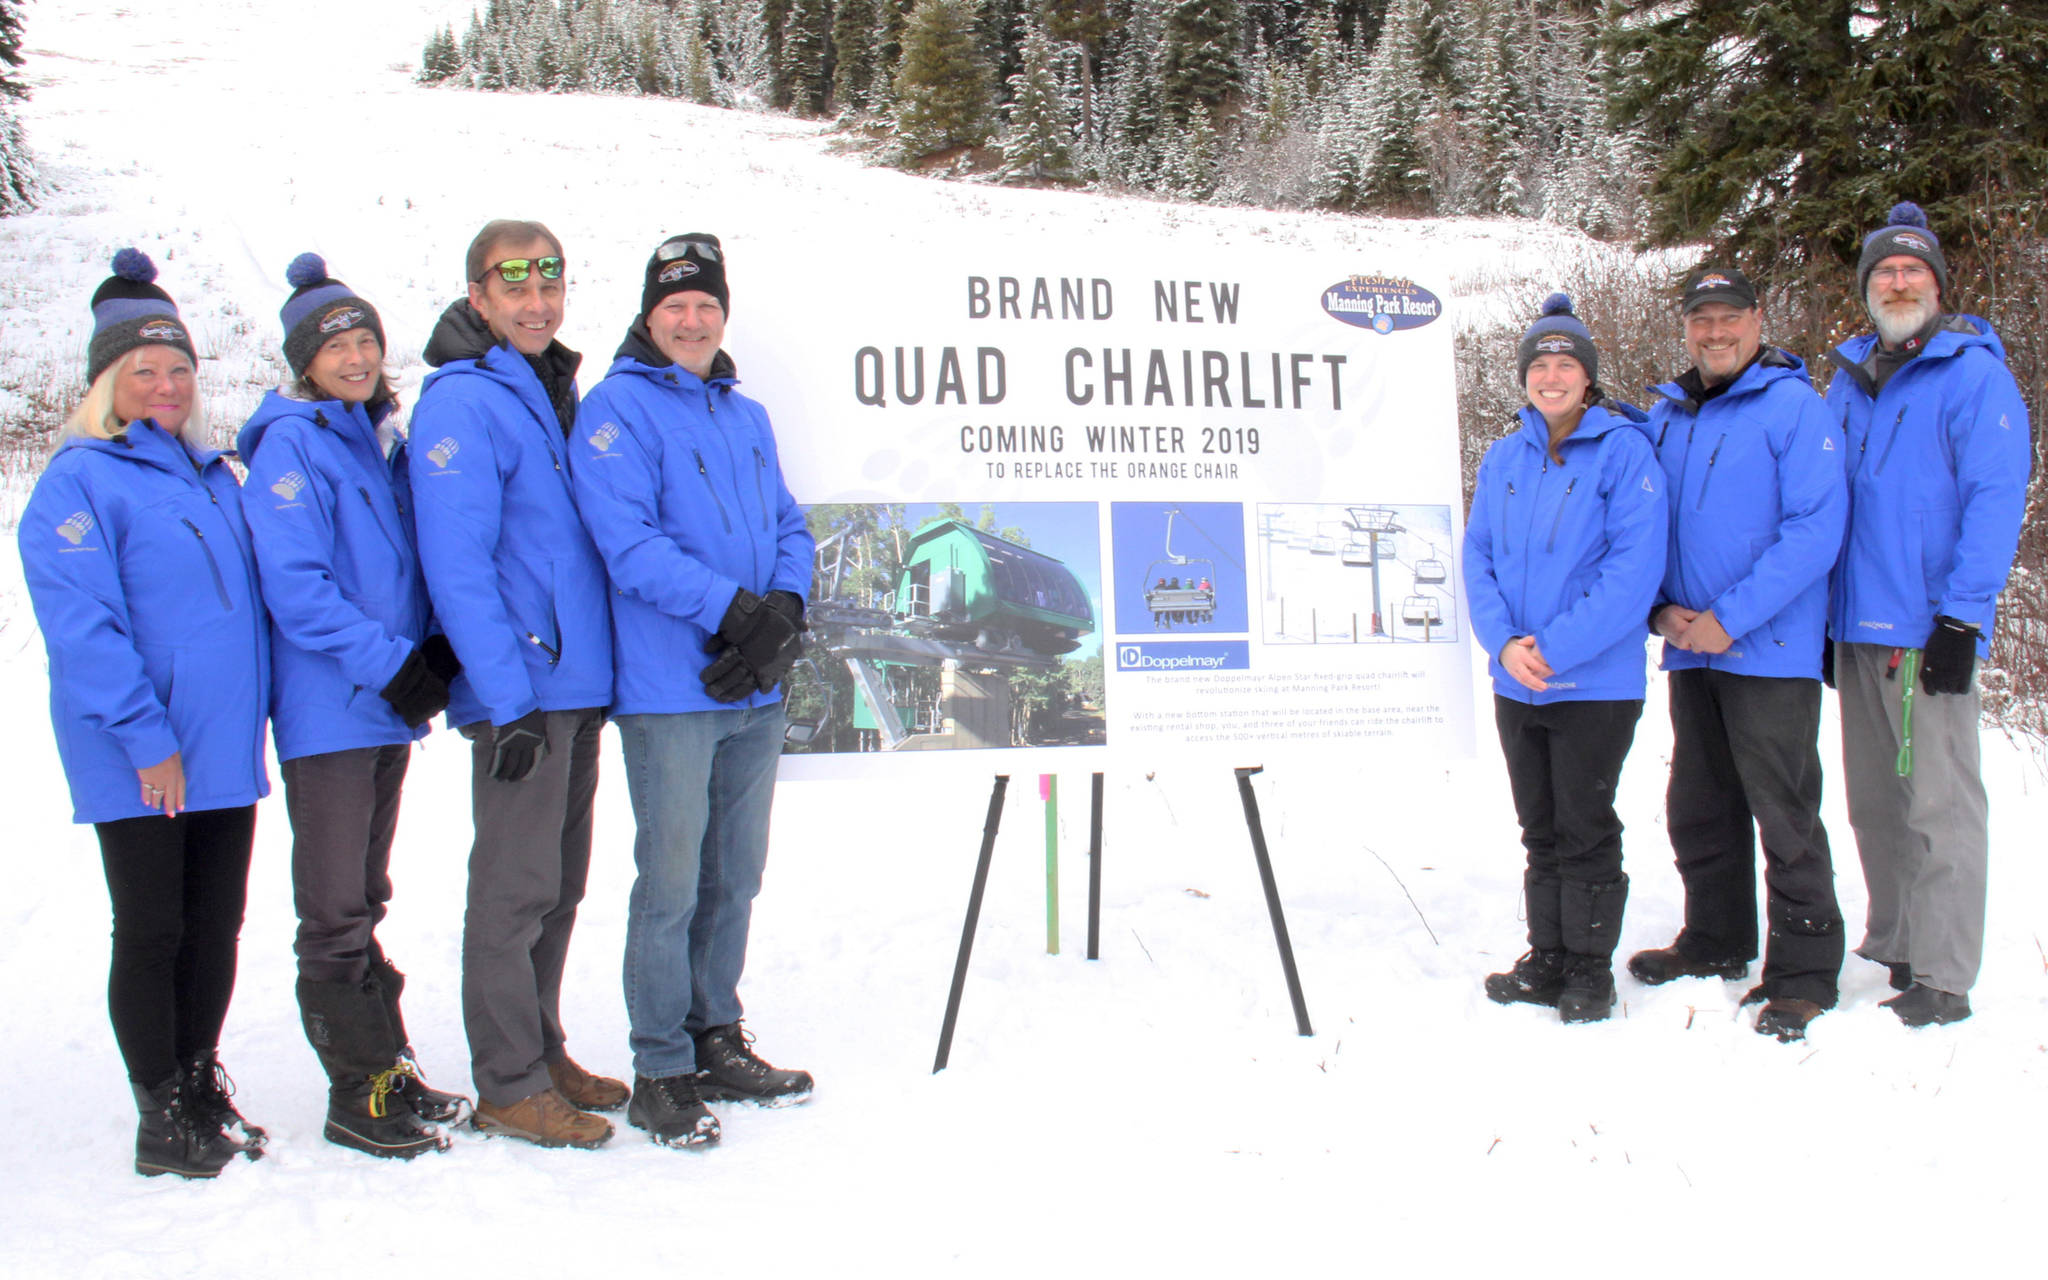 The Manning Park Resort management team unveiled plans for a new quad chairlift Nov. 25. They are, from left, Corrina Sawers, Terri Watson, Vern Schram, Don Sharpe, Robyn Barker, Andy Boulé and Matt Bergin. Missing from the photo is Kristina Davis. Manning Park Resort photo